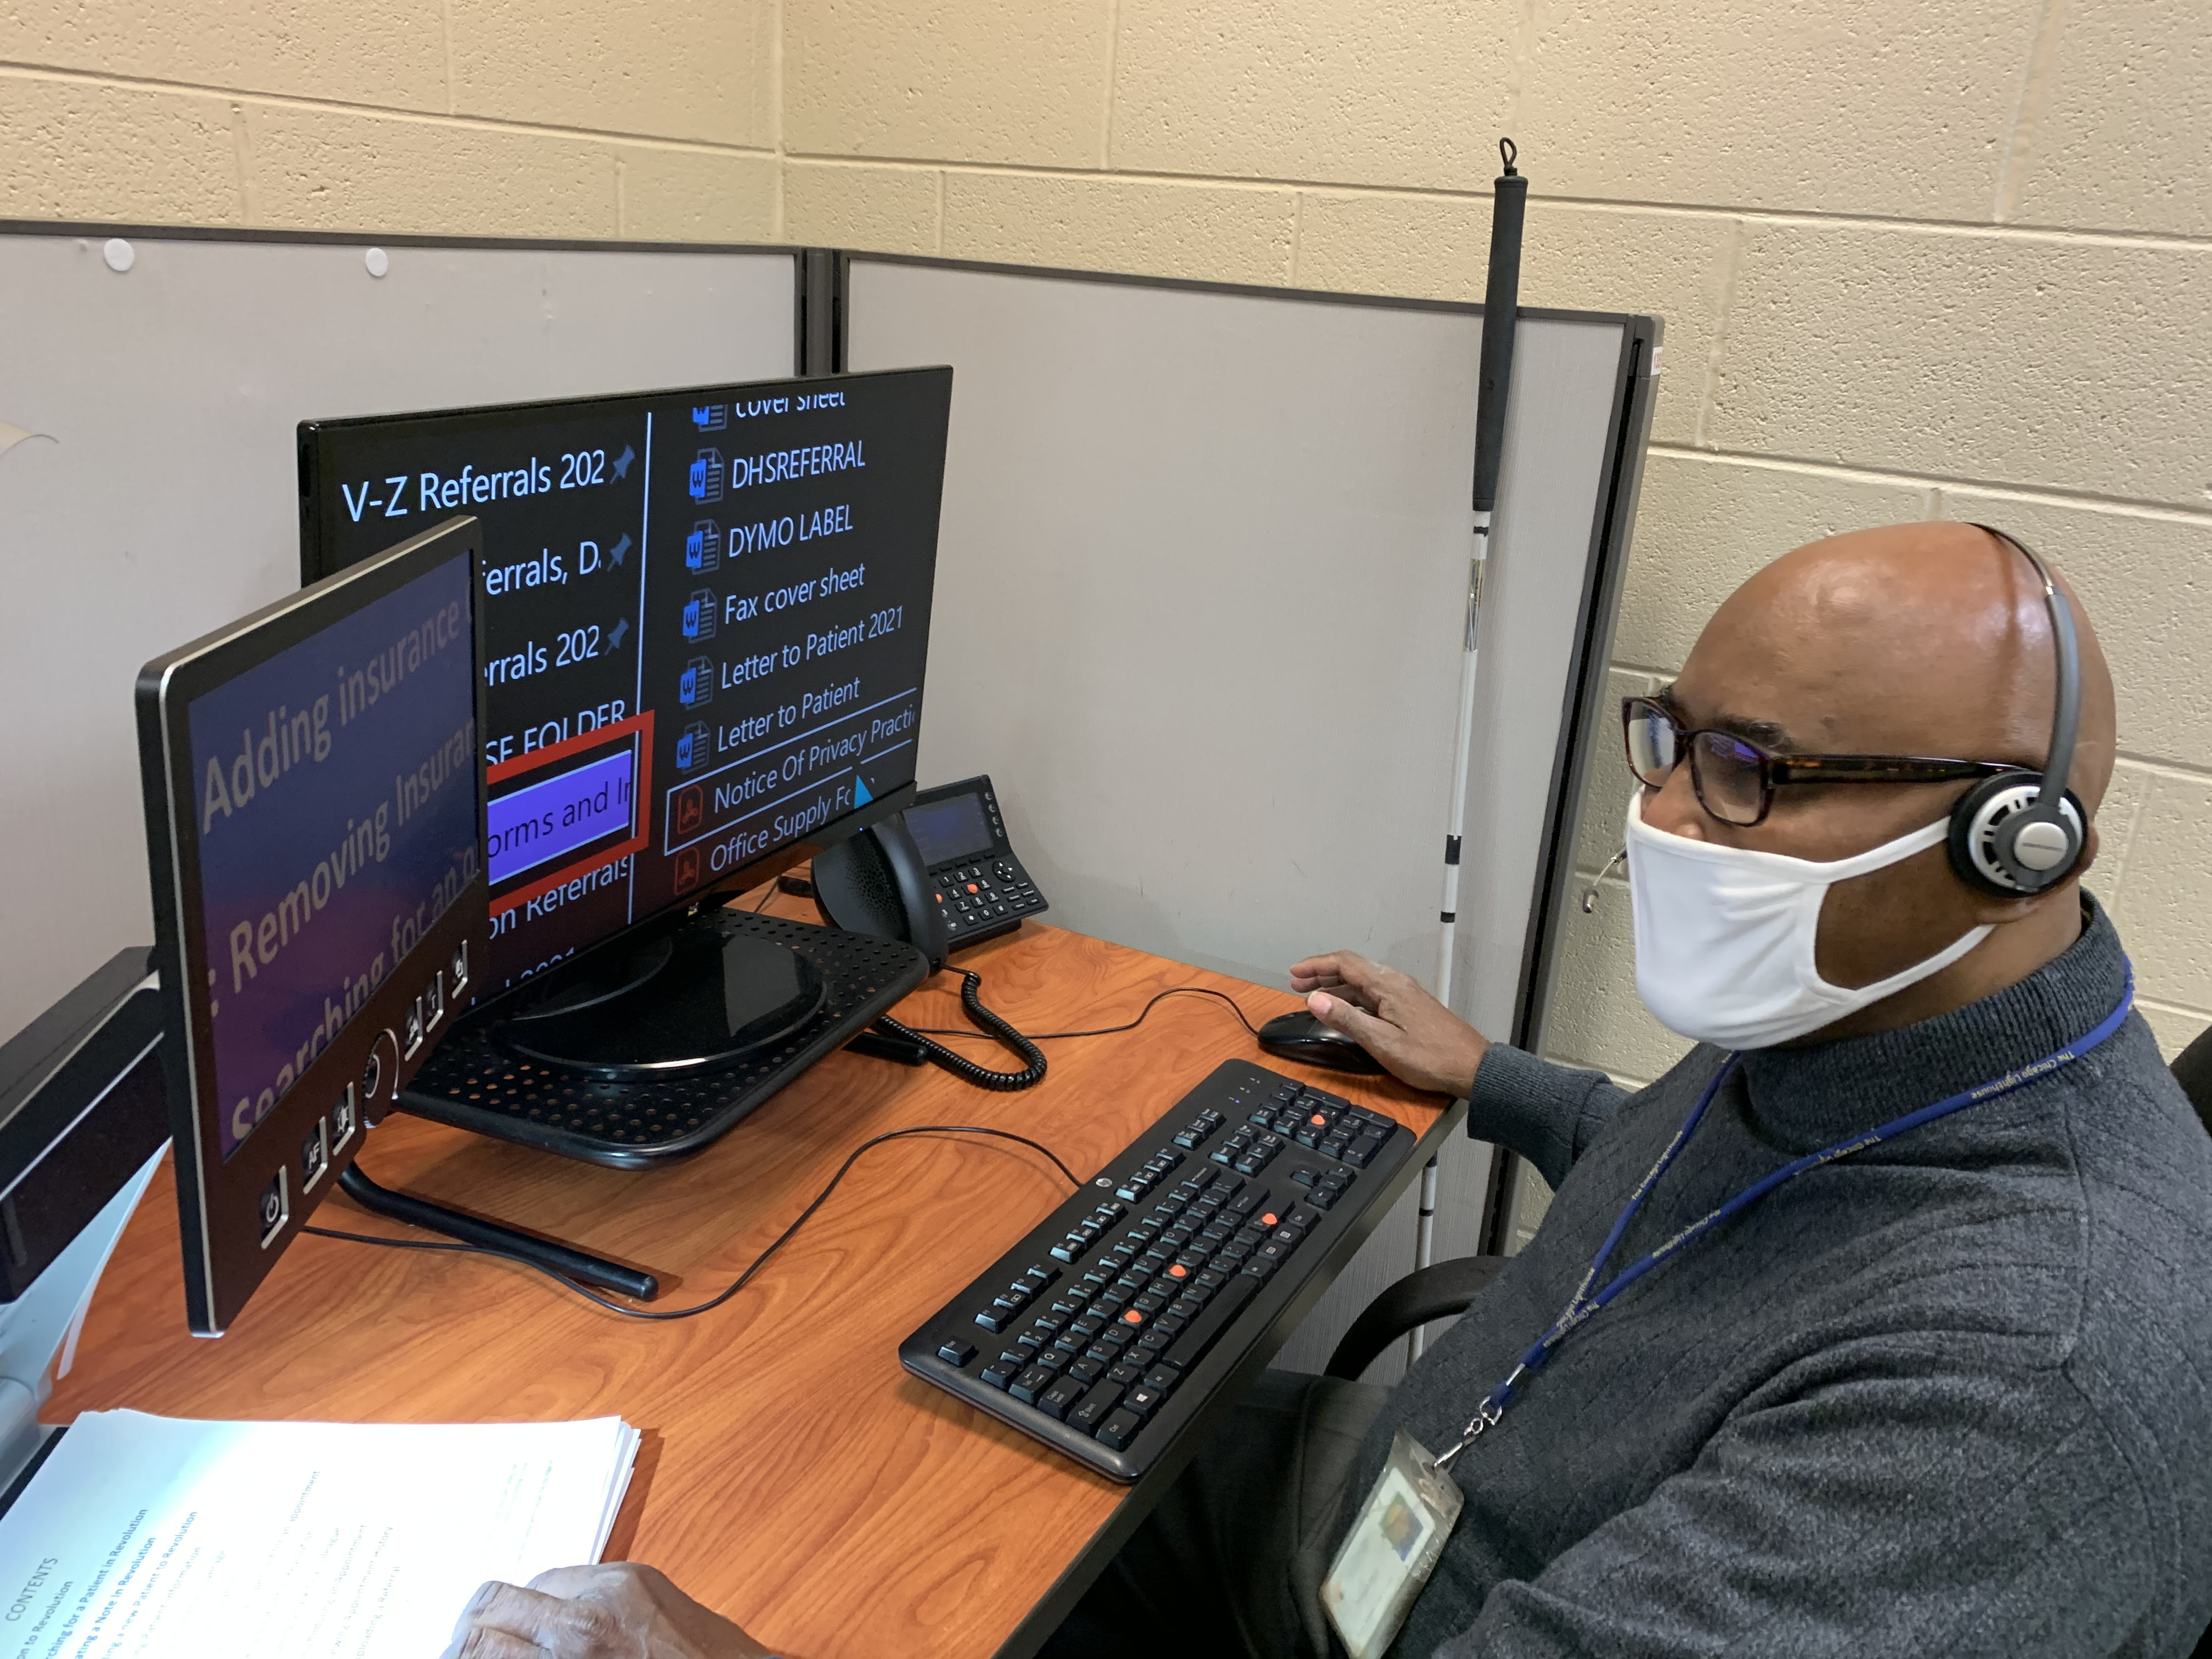 Joseph sitting at a desk in front of his computer, wearing a mask and glasses, with his cane leaning on the desk next to him